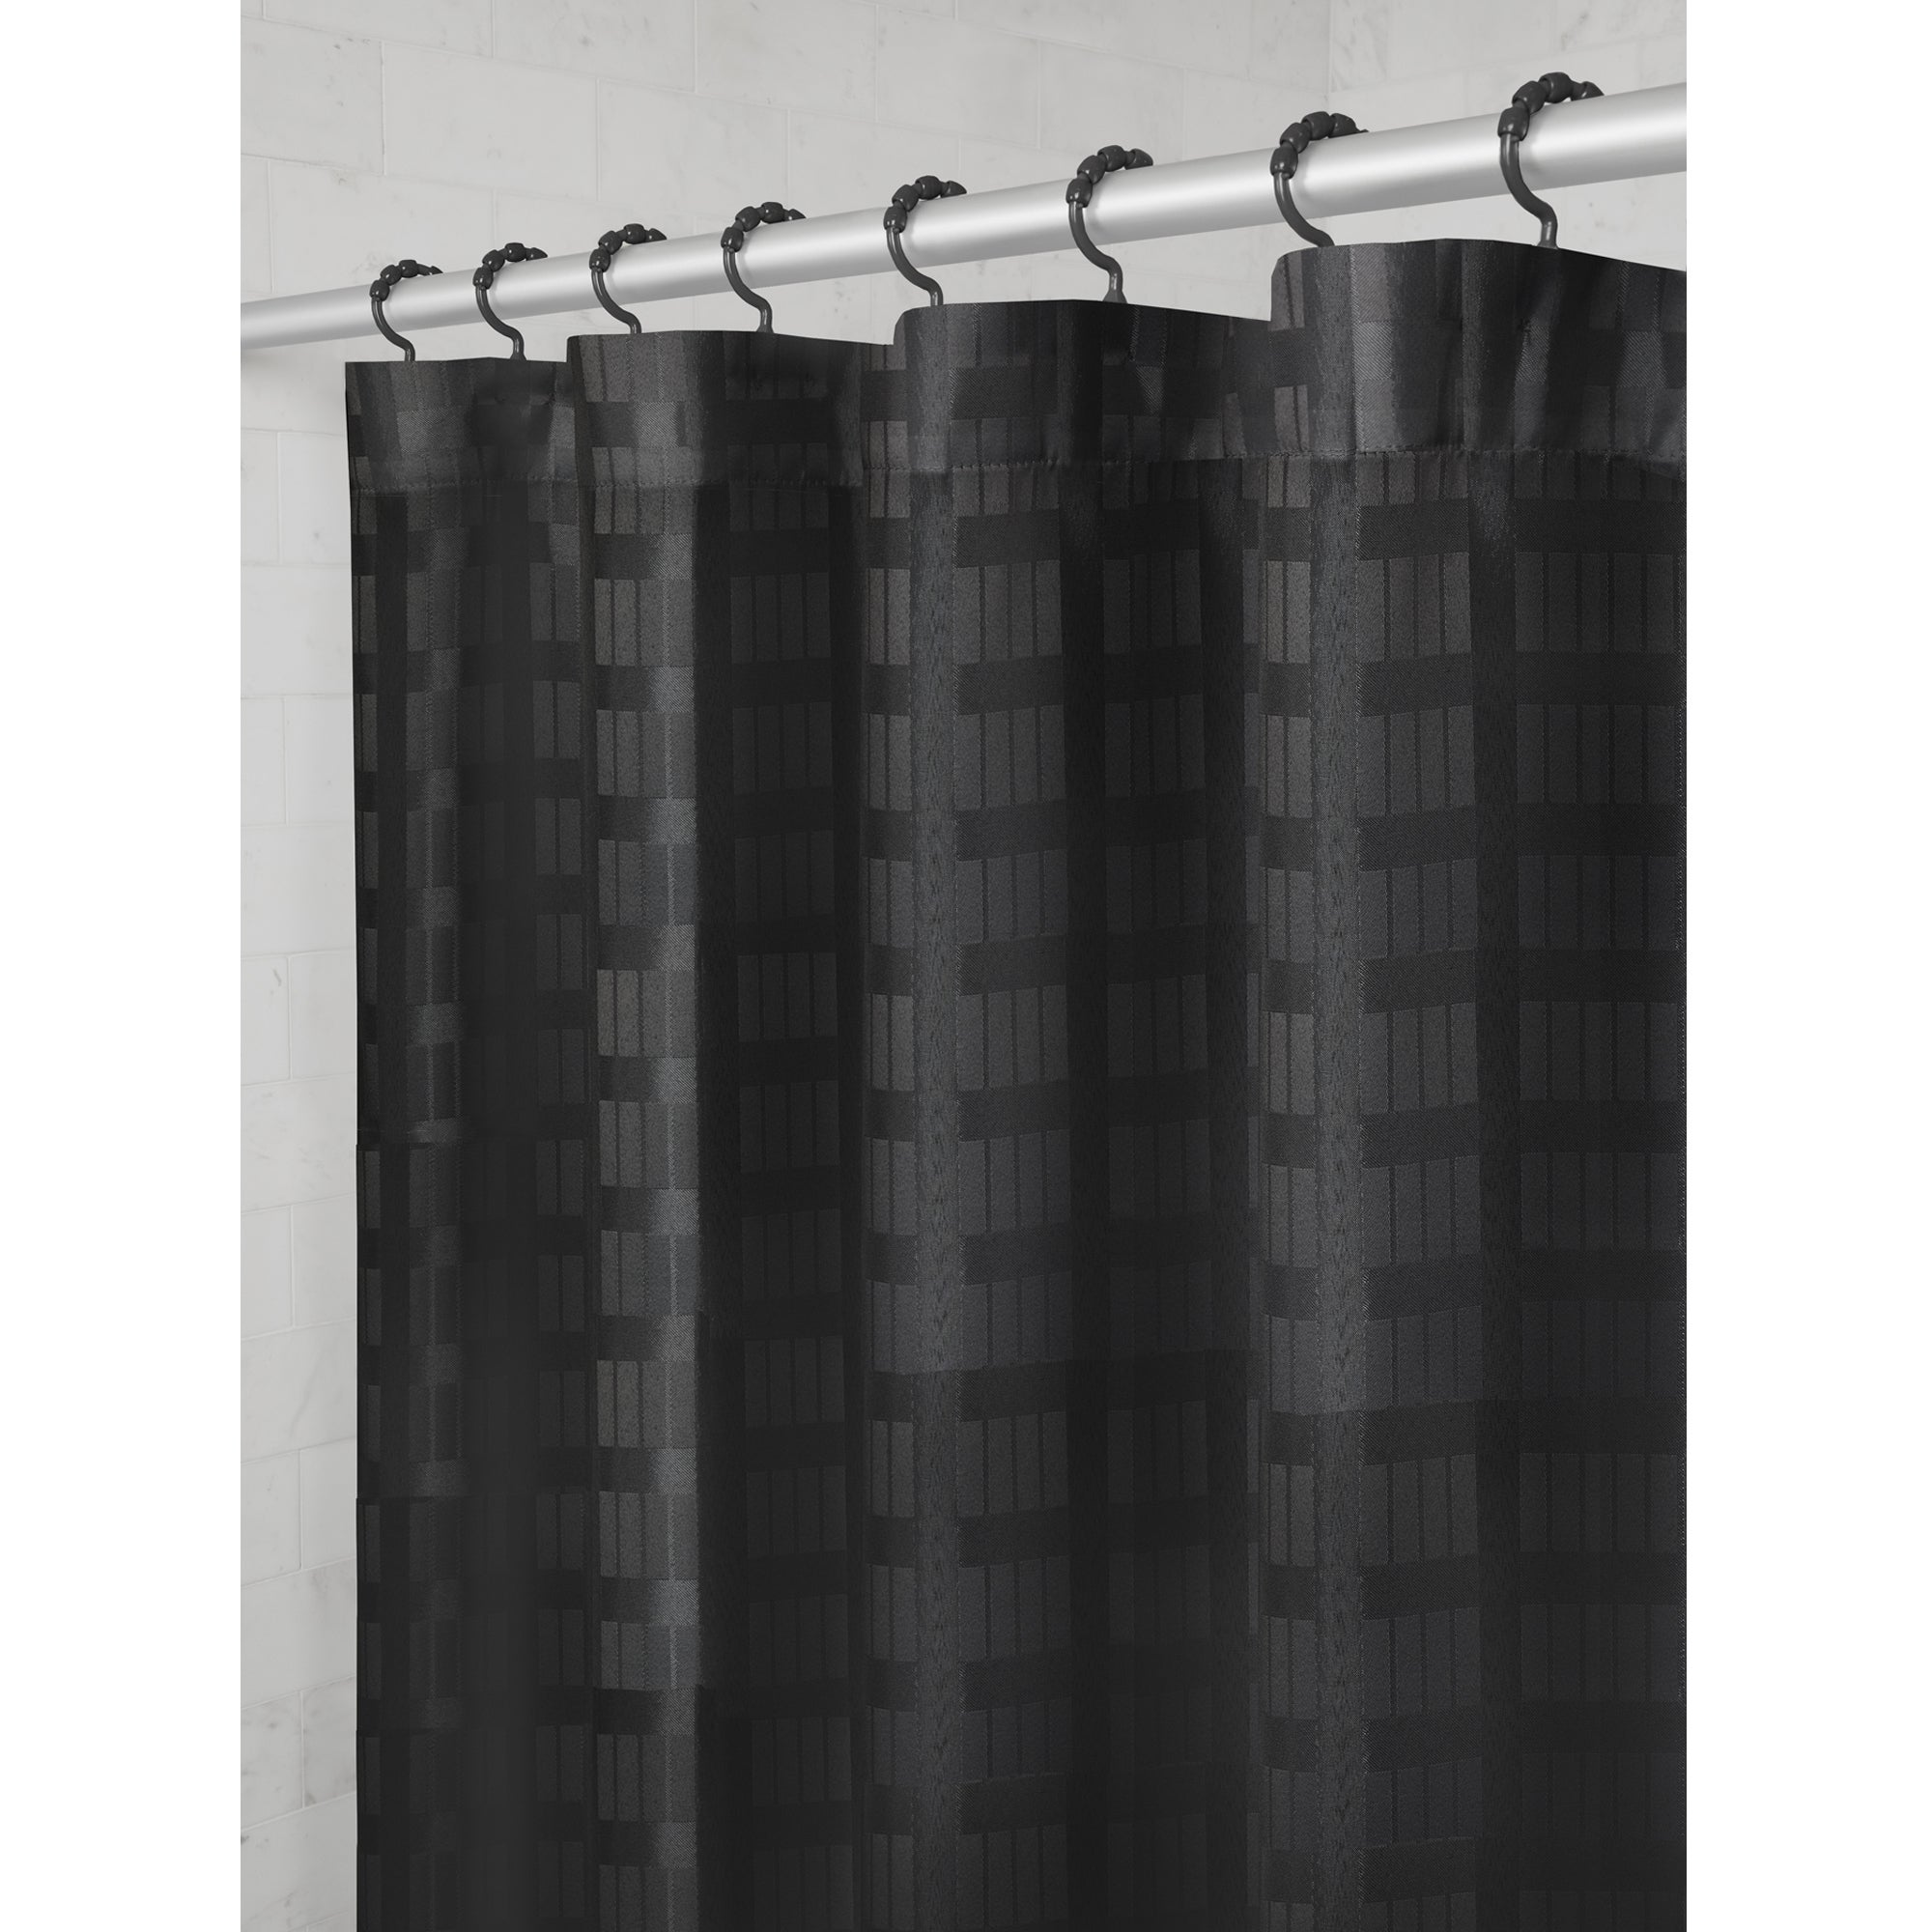 Maytex Madison Fabric Shower Curtain With Attached Roller Glide Hooks